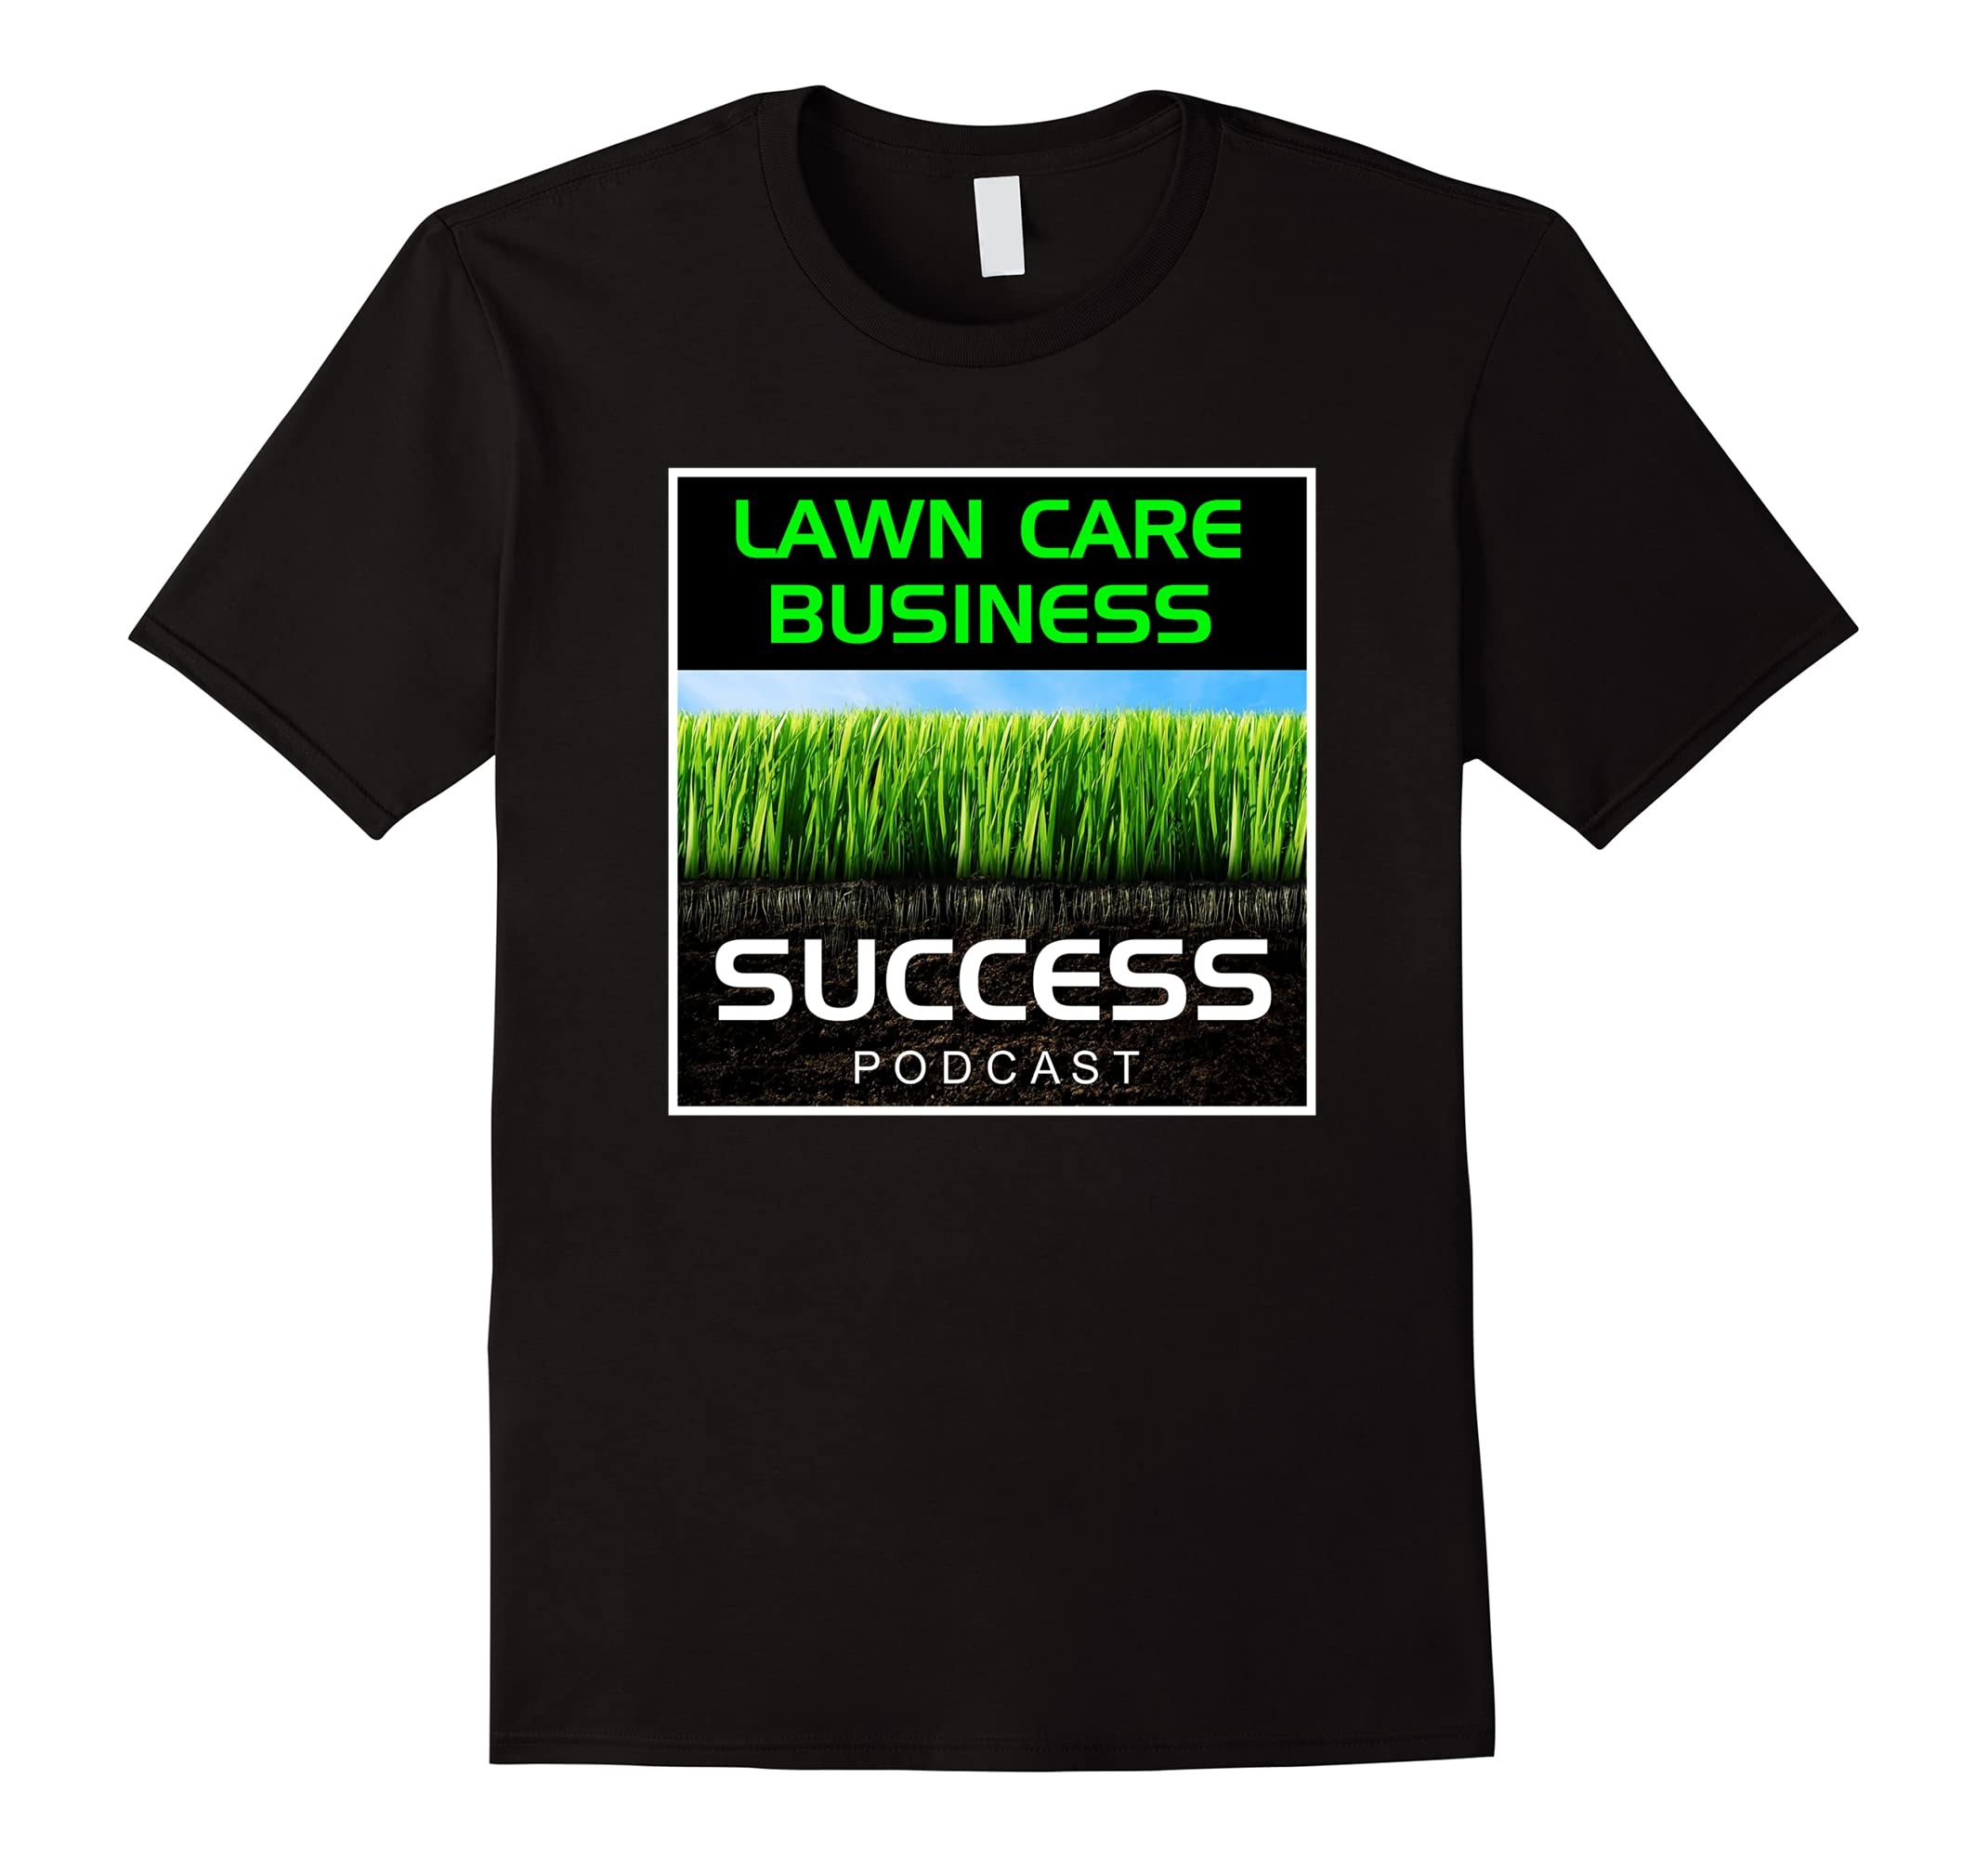 Lawn care business success podcast logo t shirt rt for Lawn care t shirt designs